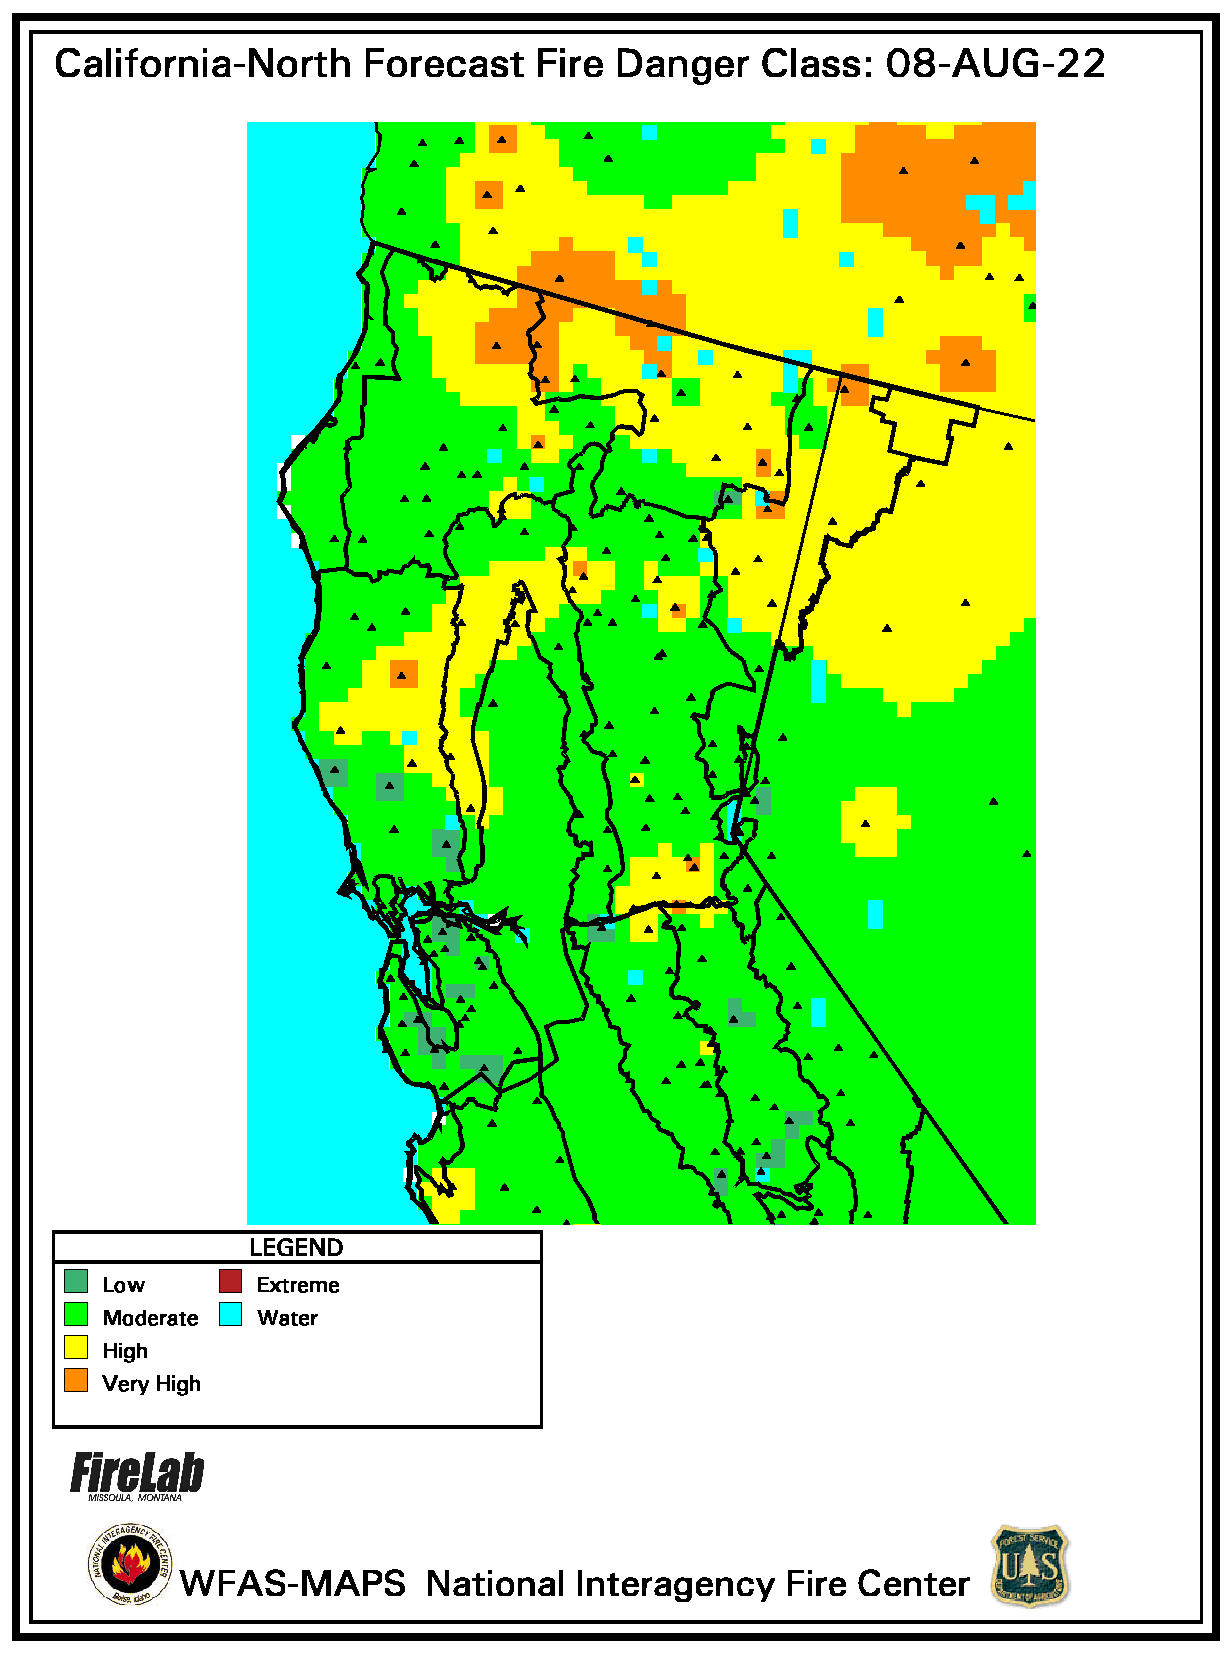 USFS Fire Danger Map